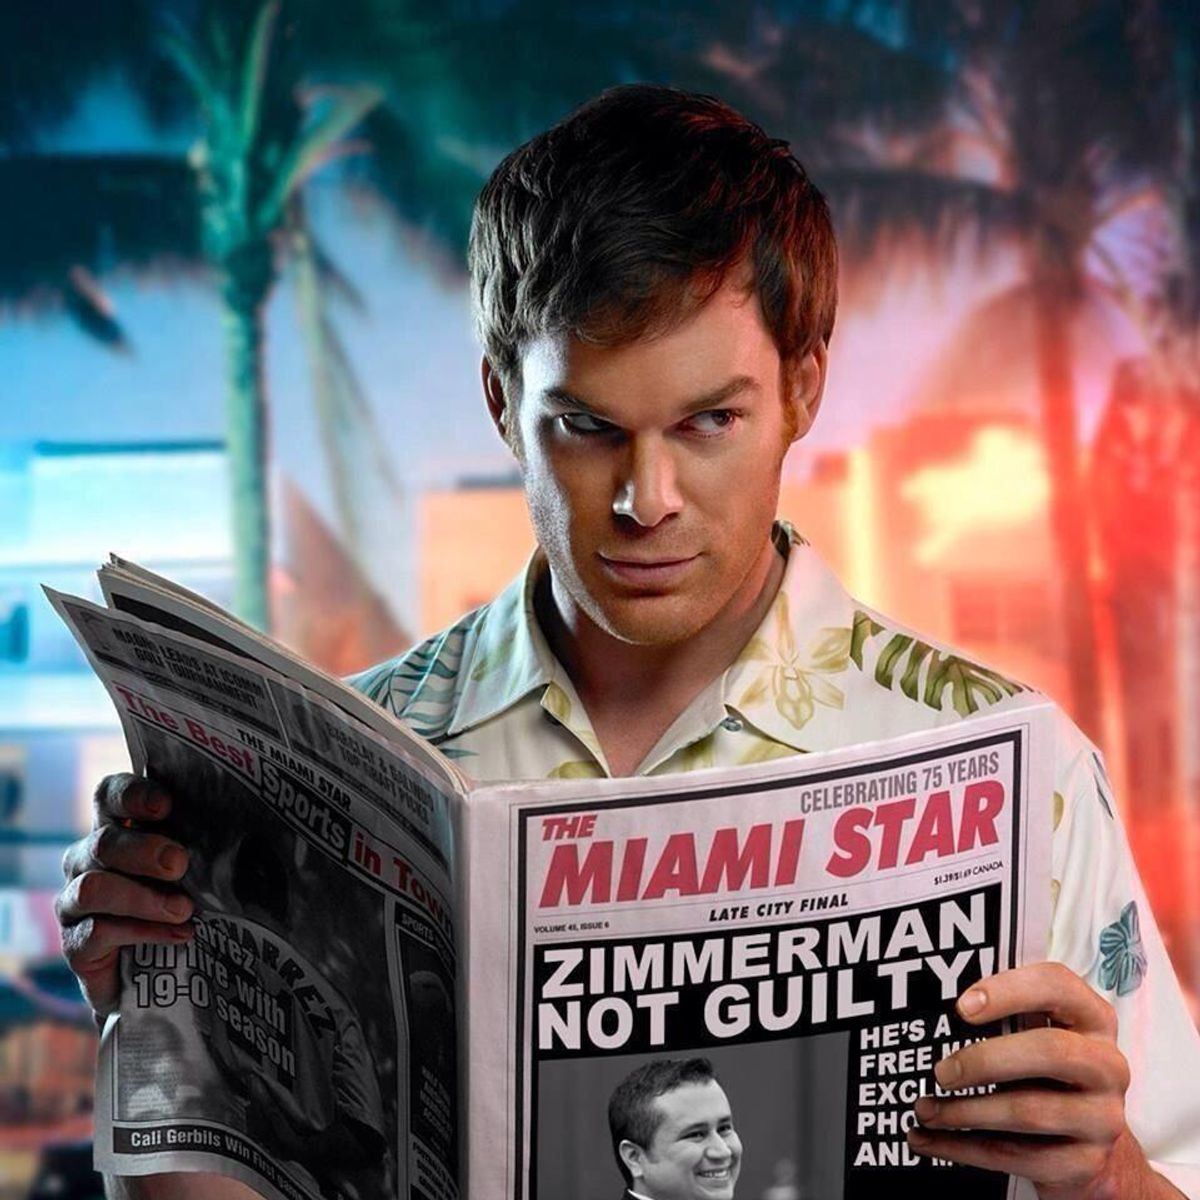 A photoshopped image of Dexter reading about Zimmerman's acquittal            (dexterpodcast/Flickr)